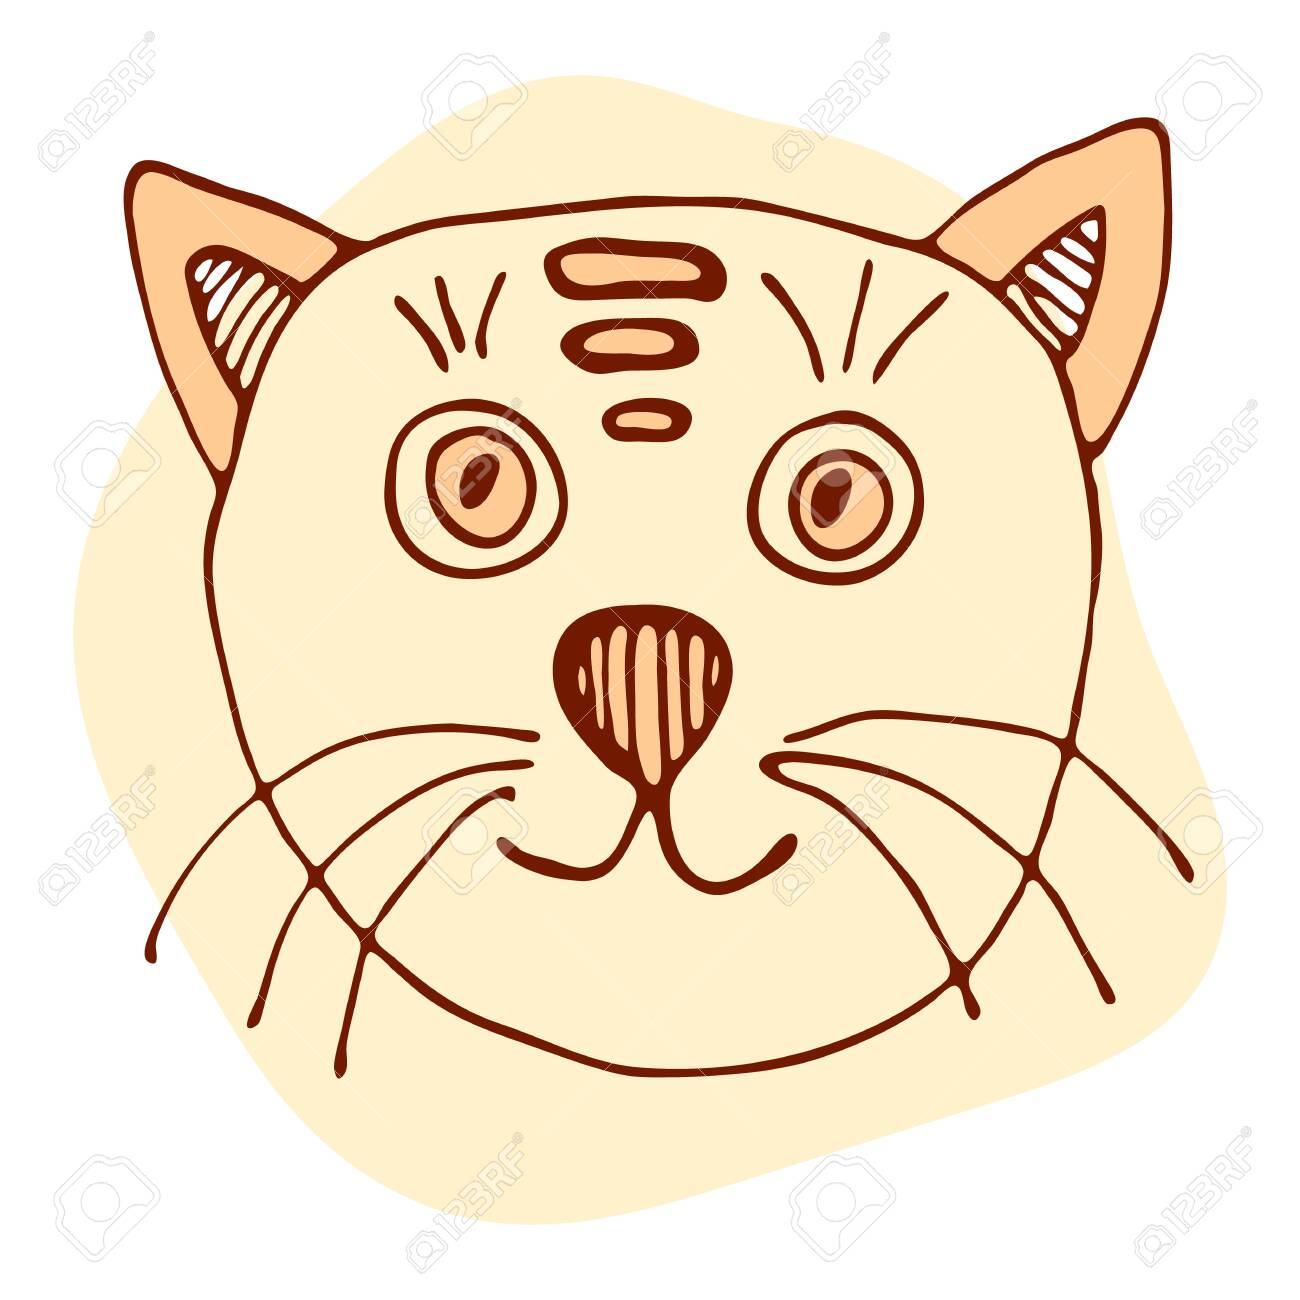 Vector Stock Kitten Illustration Orange And Brown Cat In Doodle Royalty Free Cliparts Vectors And Stock Illustration Image 147388409